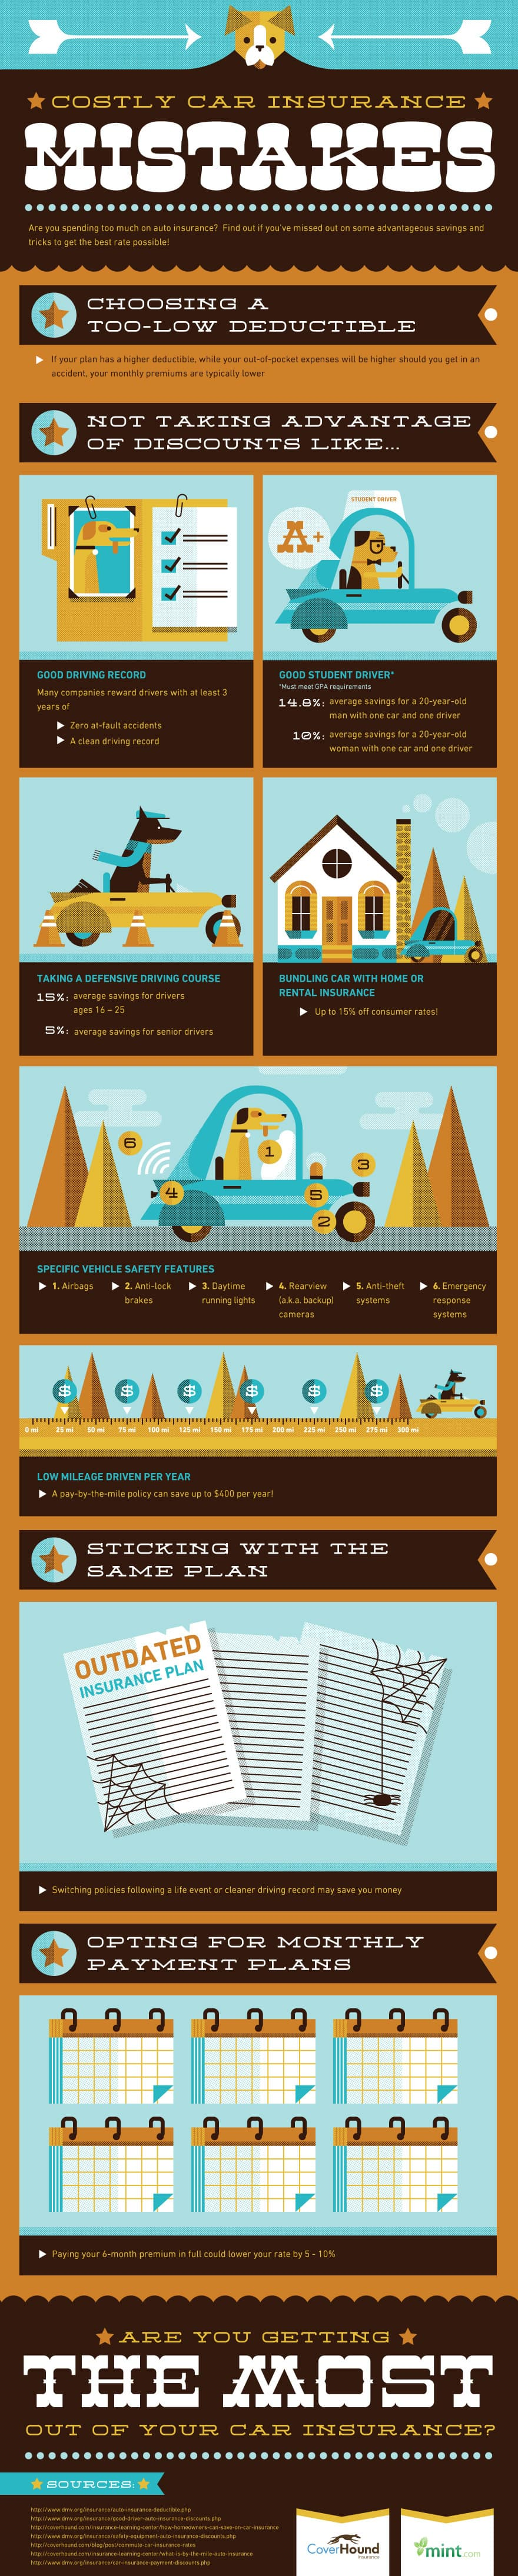 MintLife_CarInsuranceMistakes(infographic)-08414